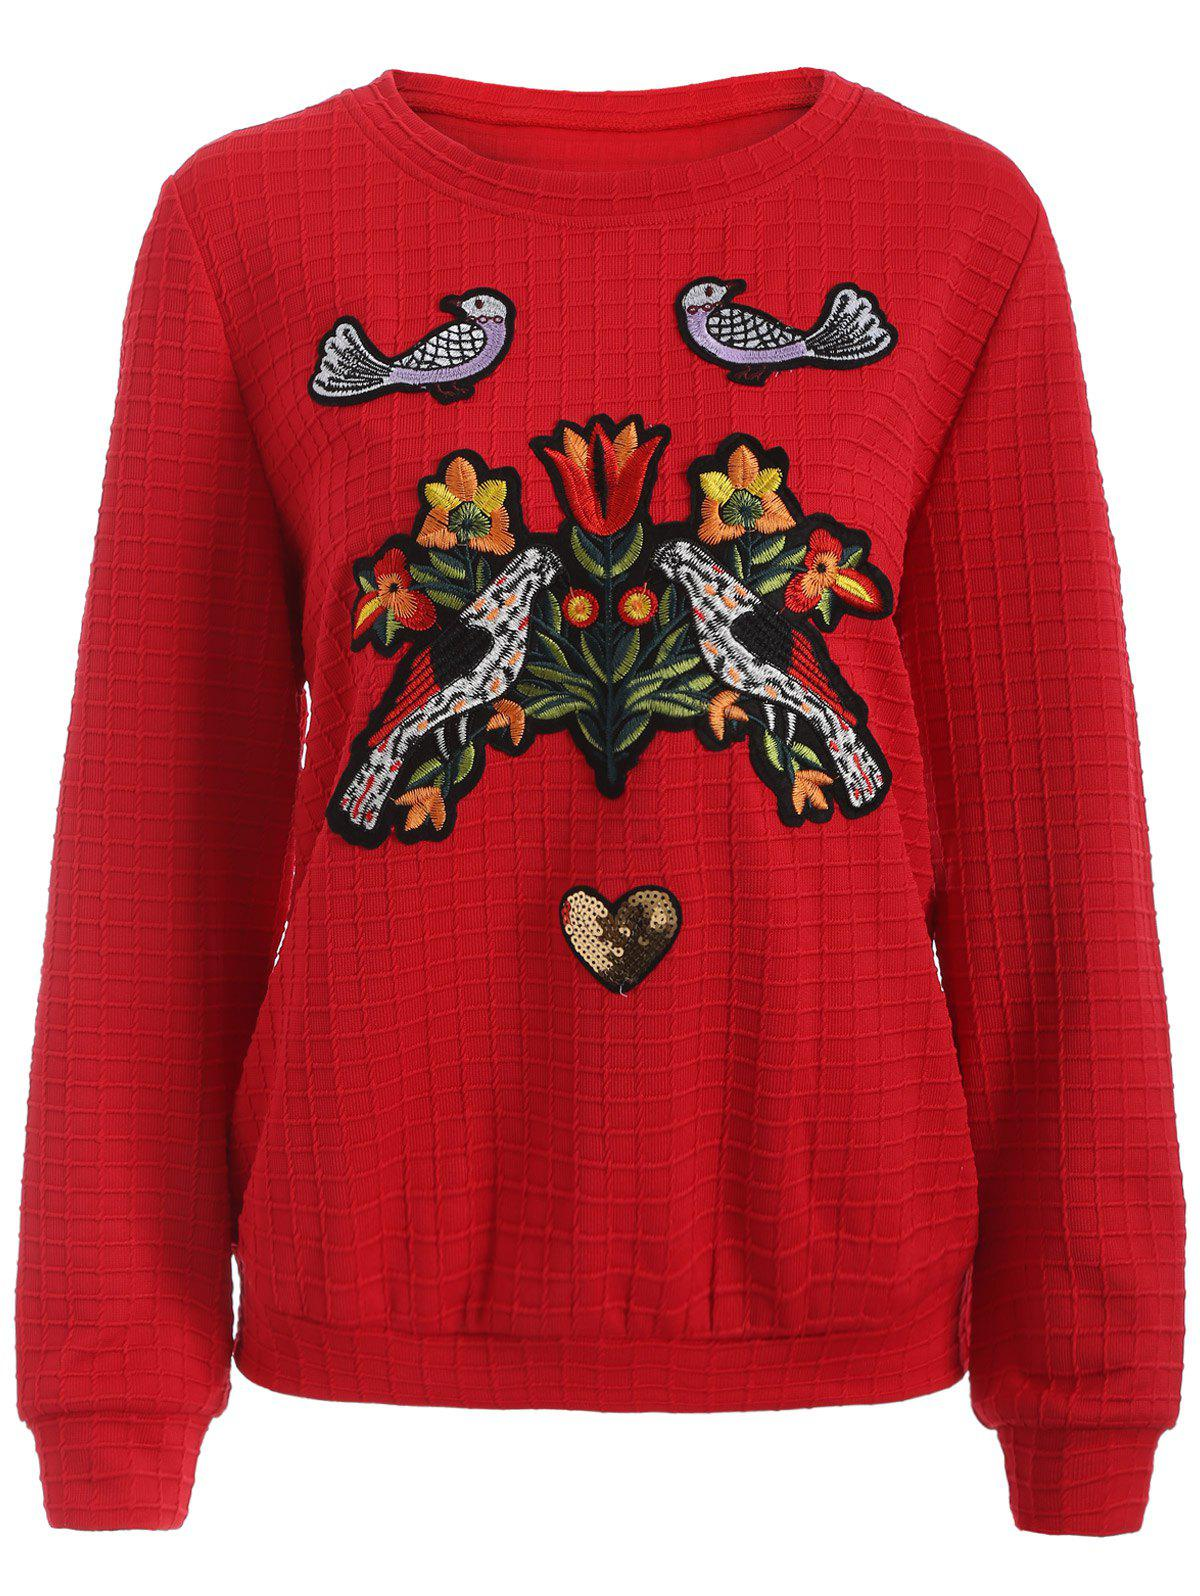 Flower and Bird Embroidery Heart Sequins Gingham Sweatshirt